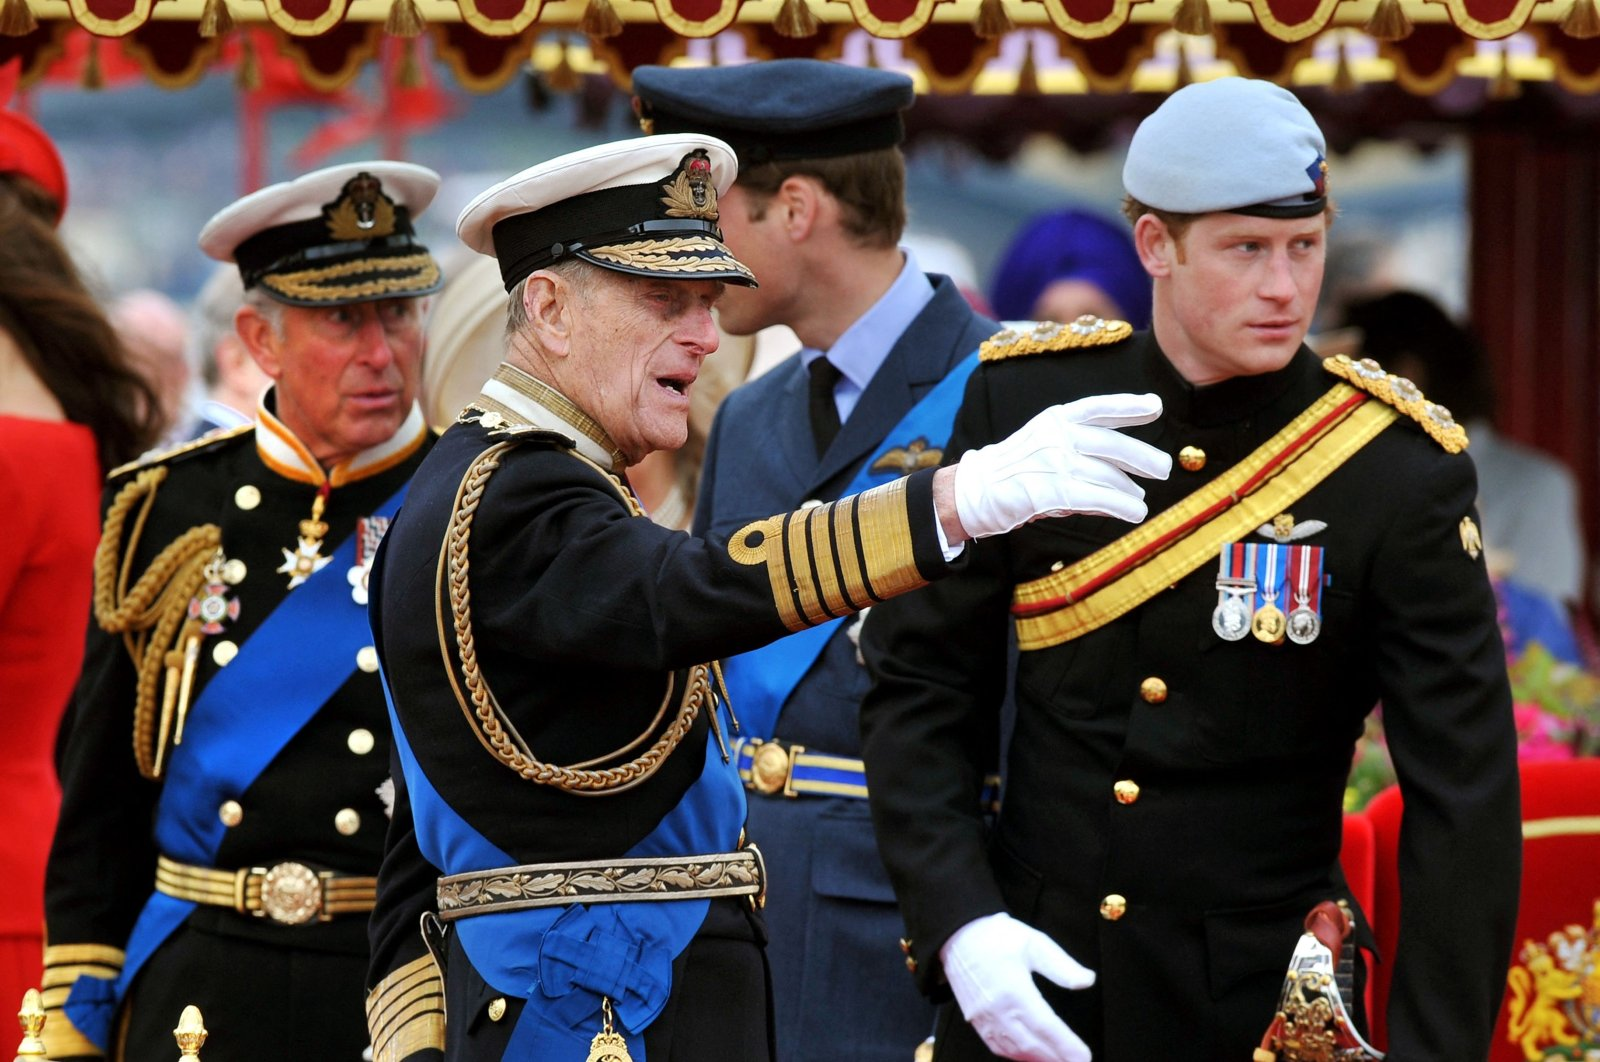 Members of the royal family Prince Charles, Prince of Wales (L), Prince Philip, Duke of Edinburgh (C), Prince Harry (R) and Prince William at the back, talk onboard the Spirit of Chartwell on the River Thames, London, U.K., June 3, 2012. (AFP Photo)